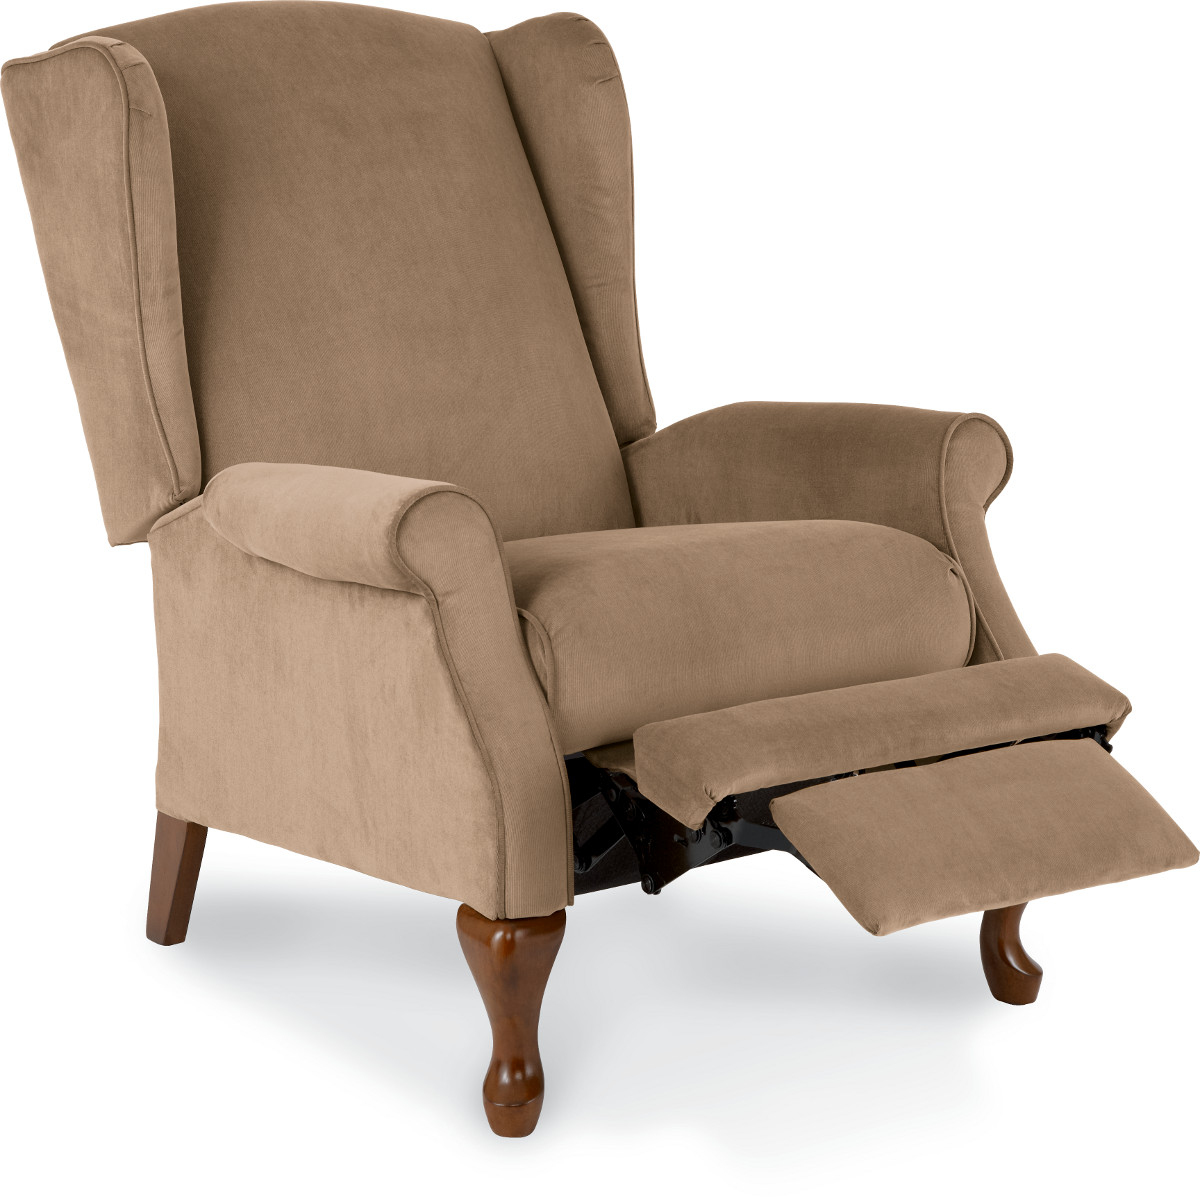 Kimberly High Leg Recliner Town Country